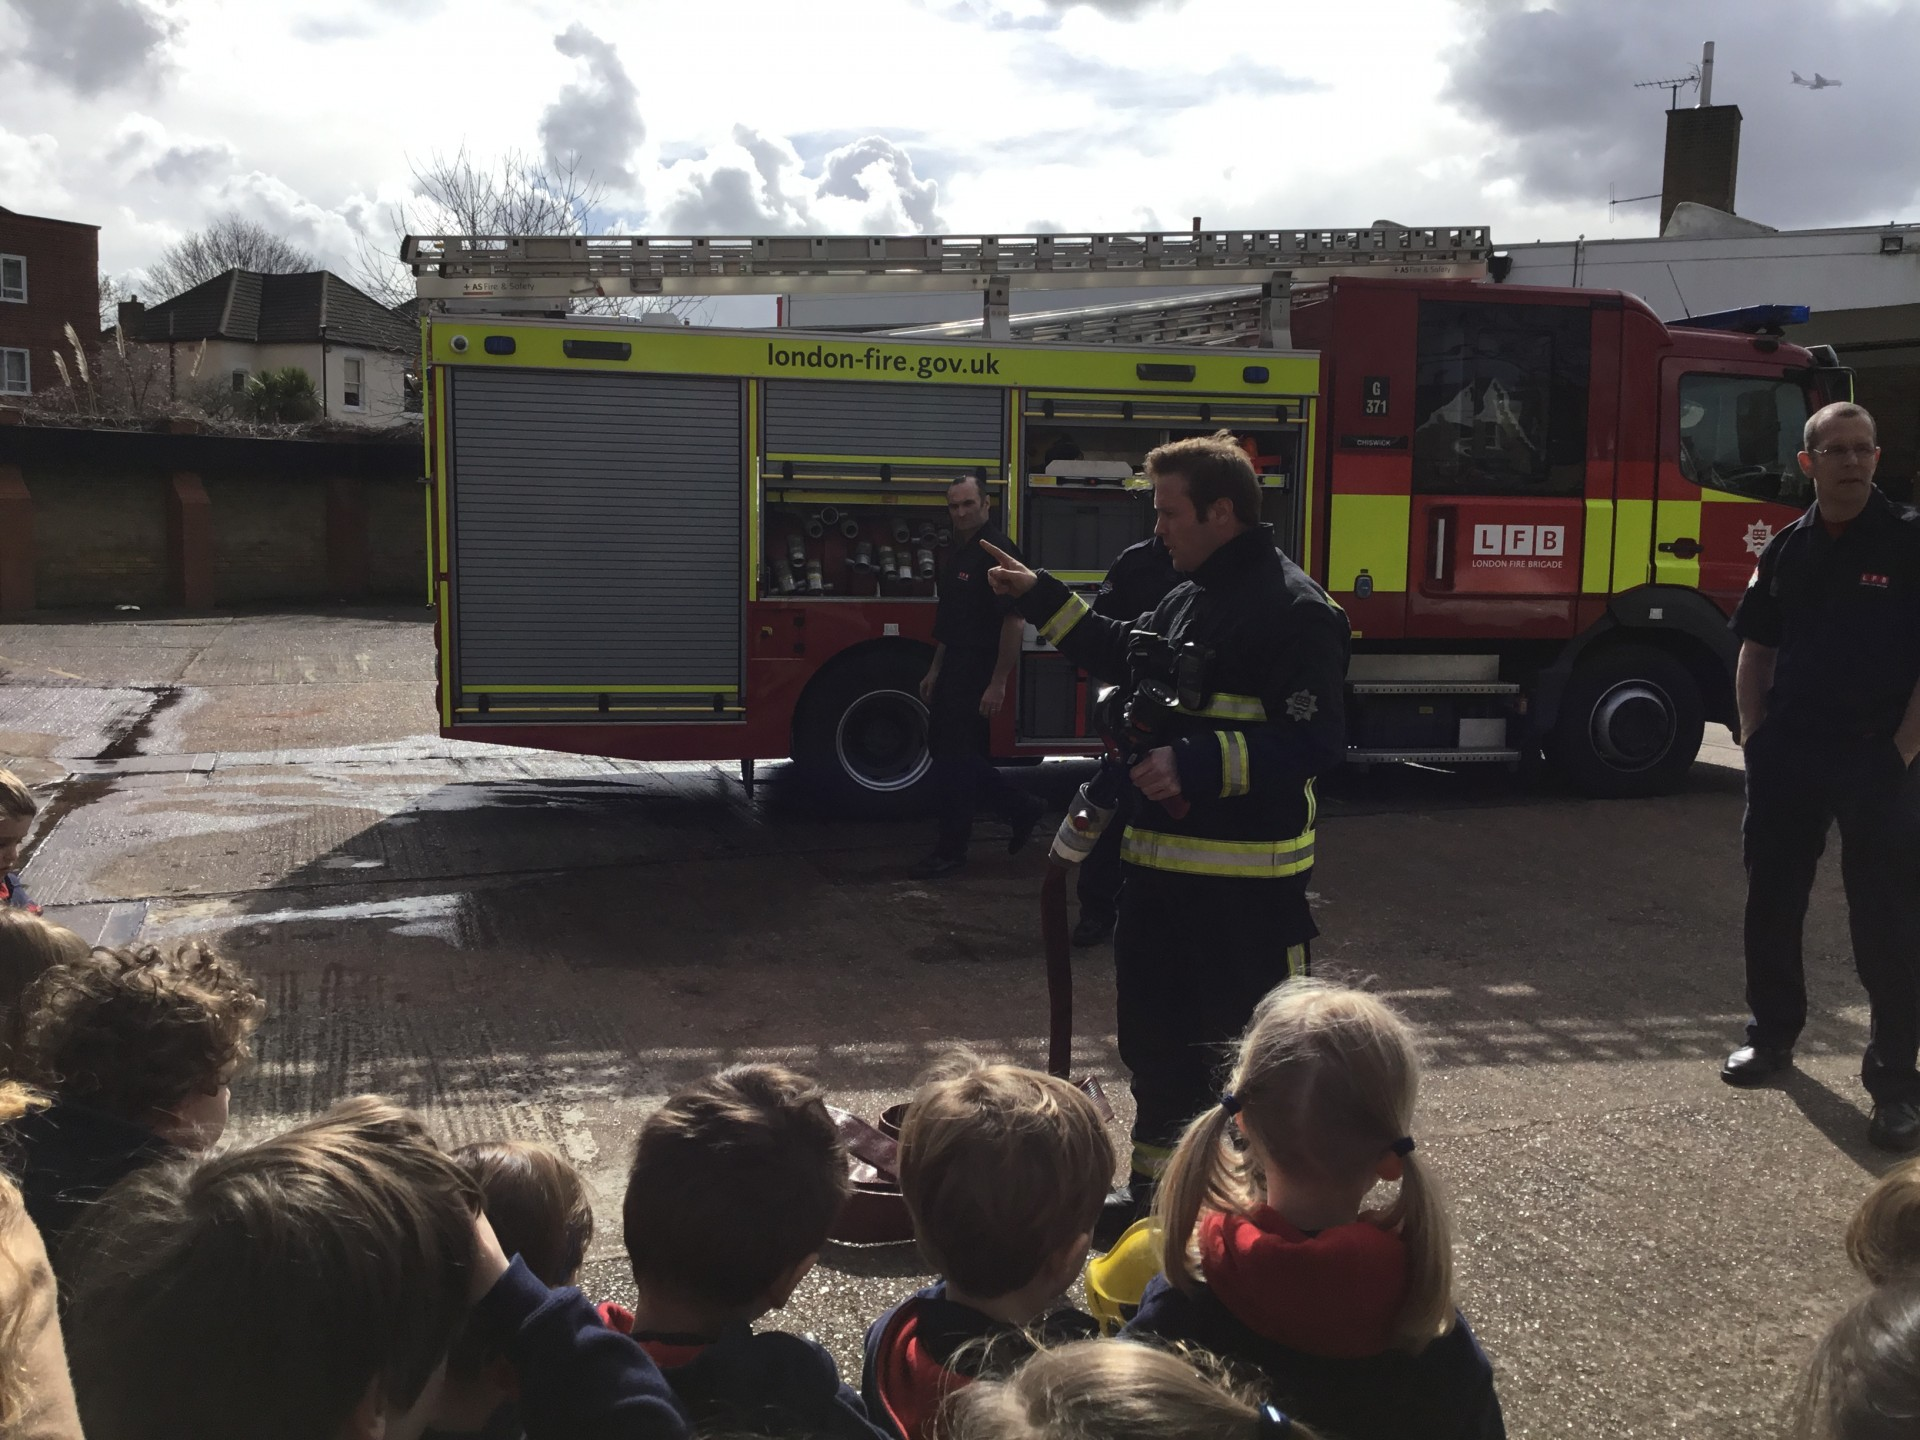 Reception Visit the Fire Station